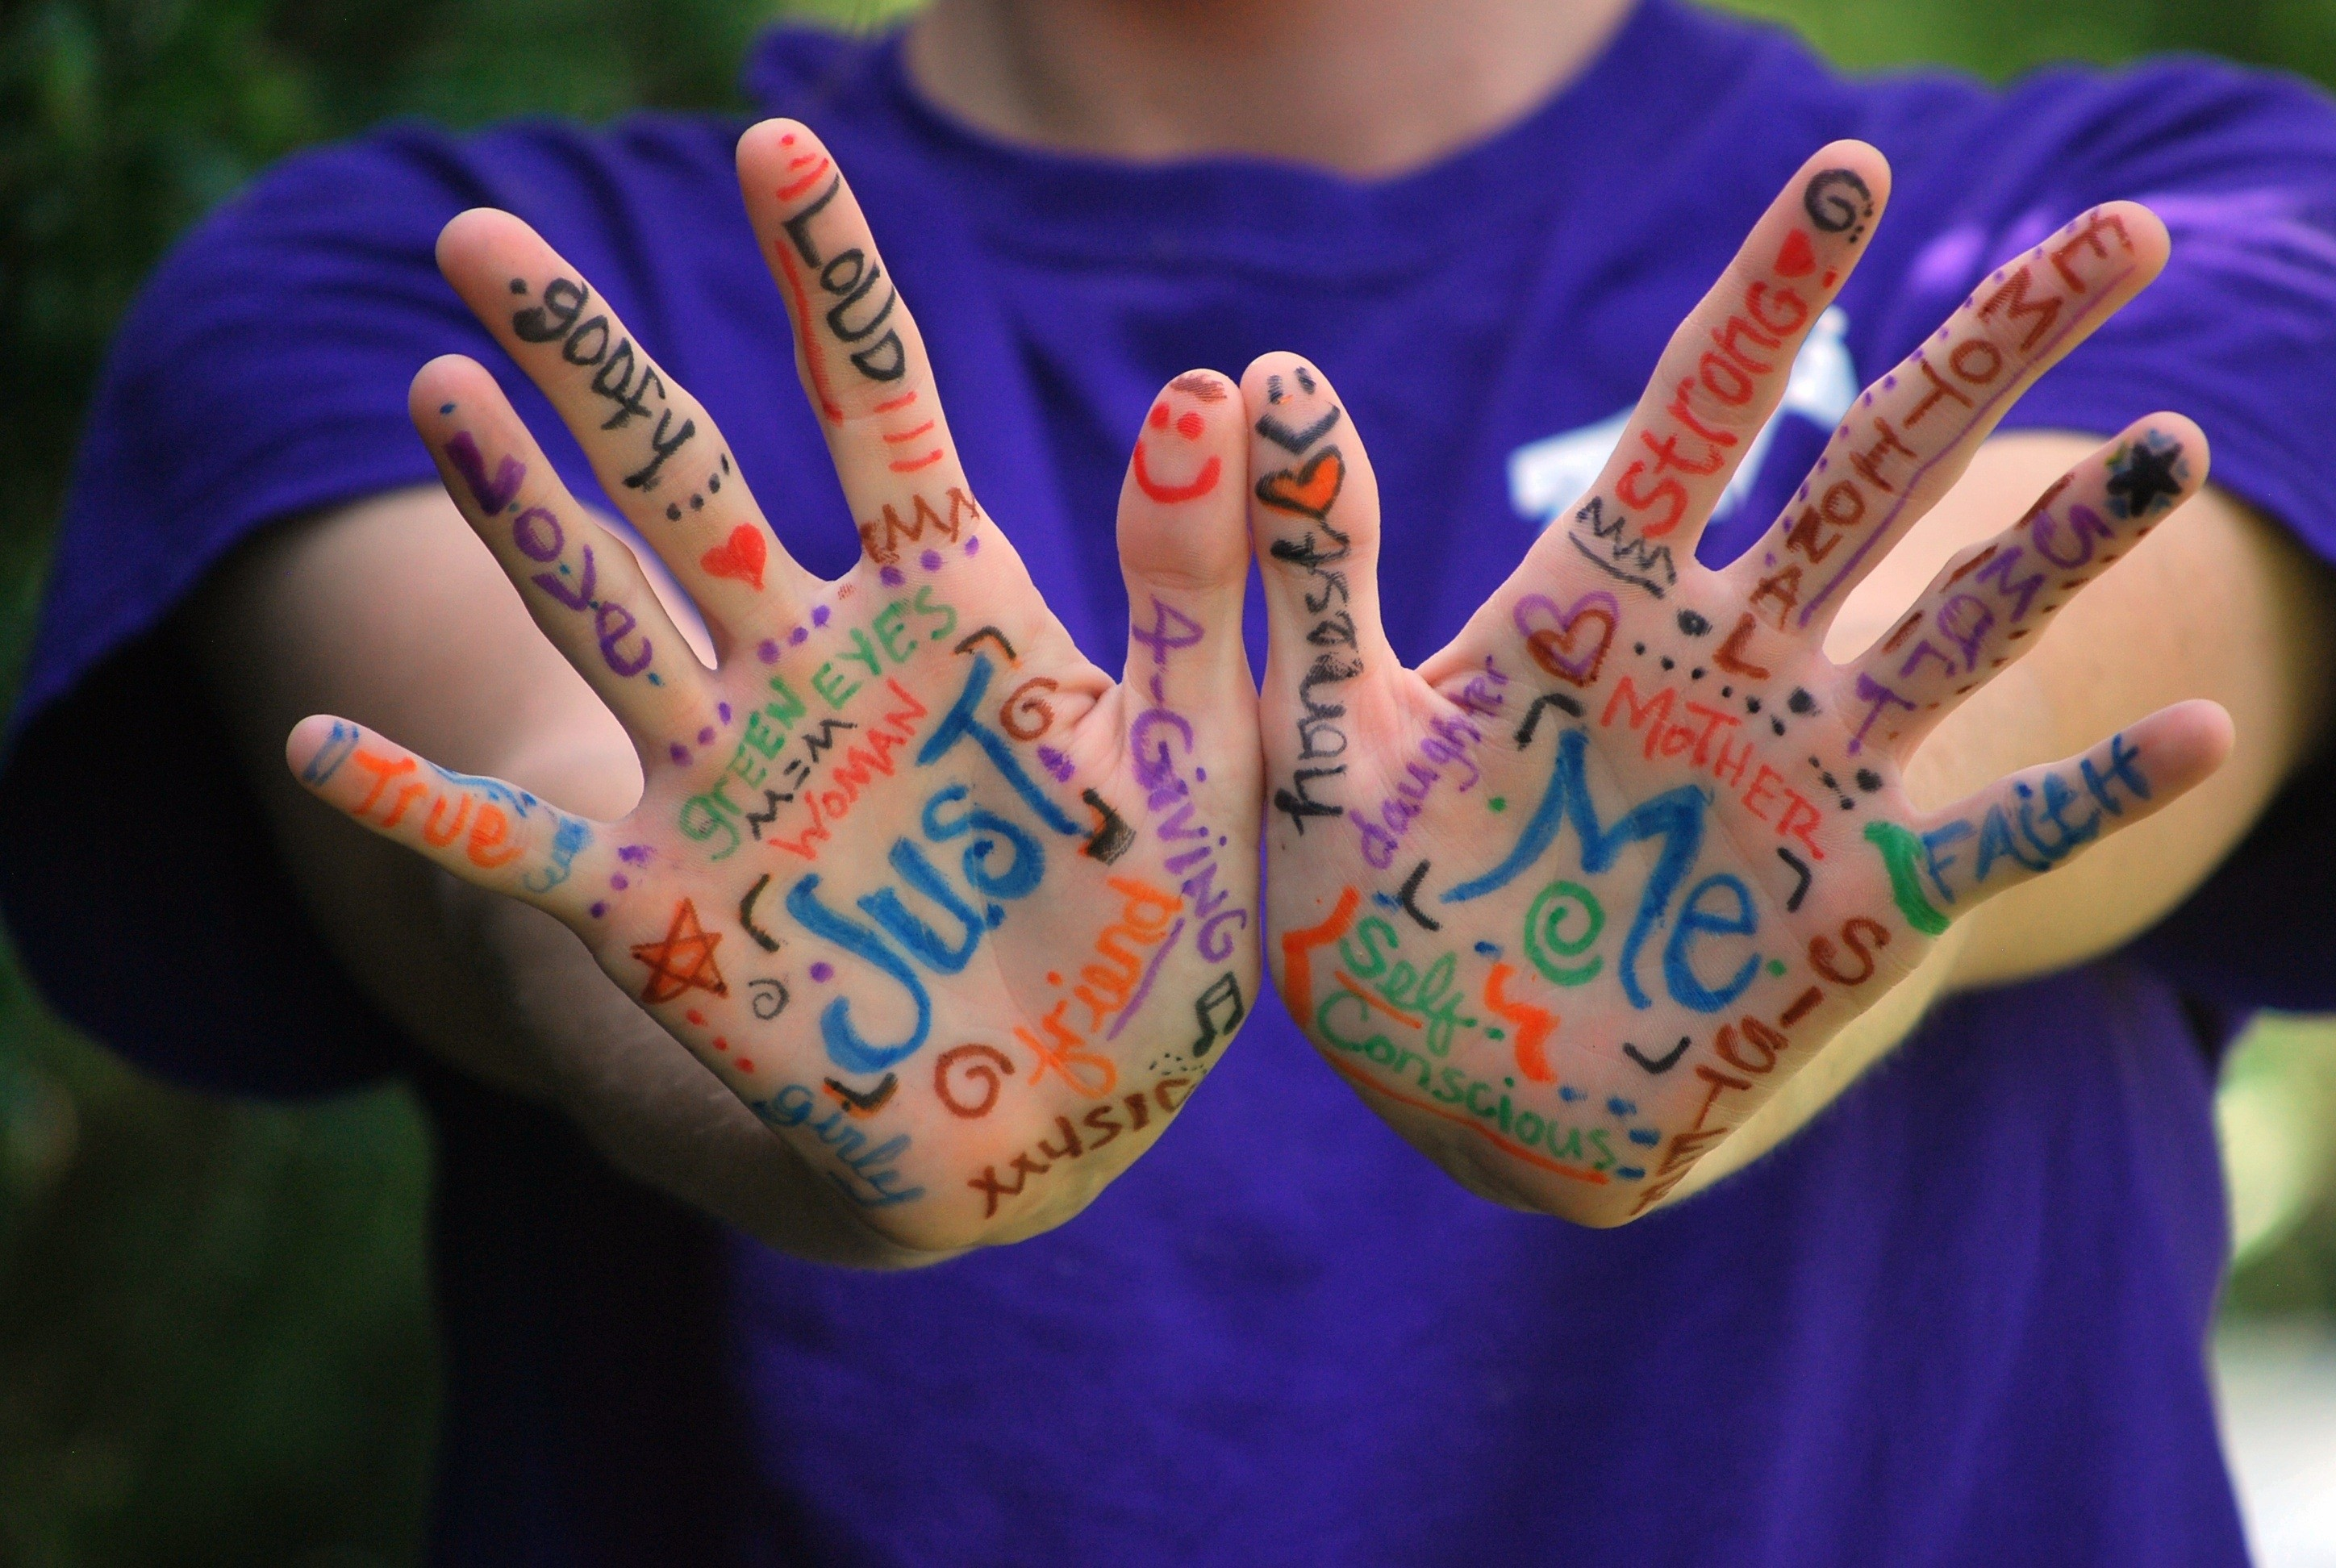 hands-words-meaning-fingers-expression-colorful